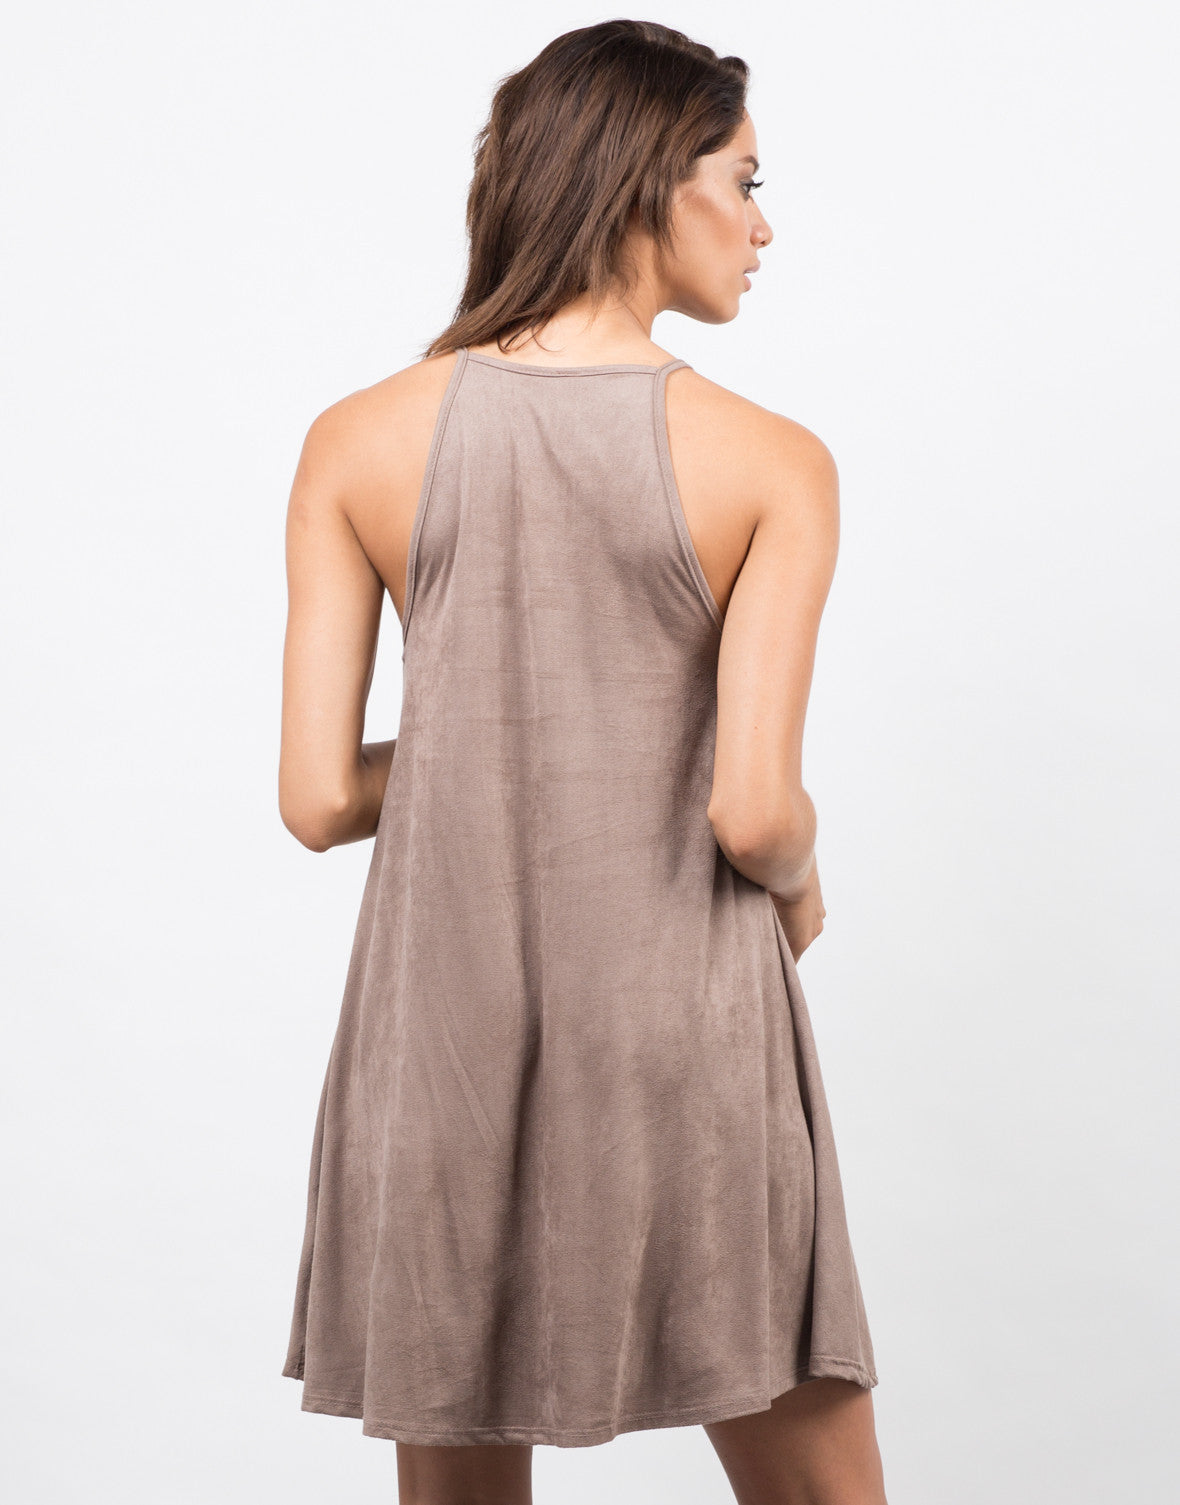 Back View of Suede Swing Dress